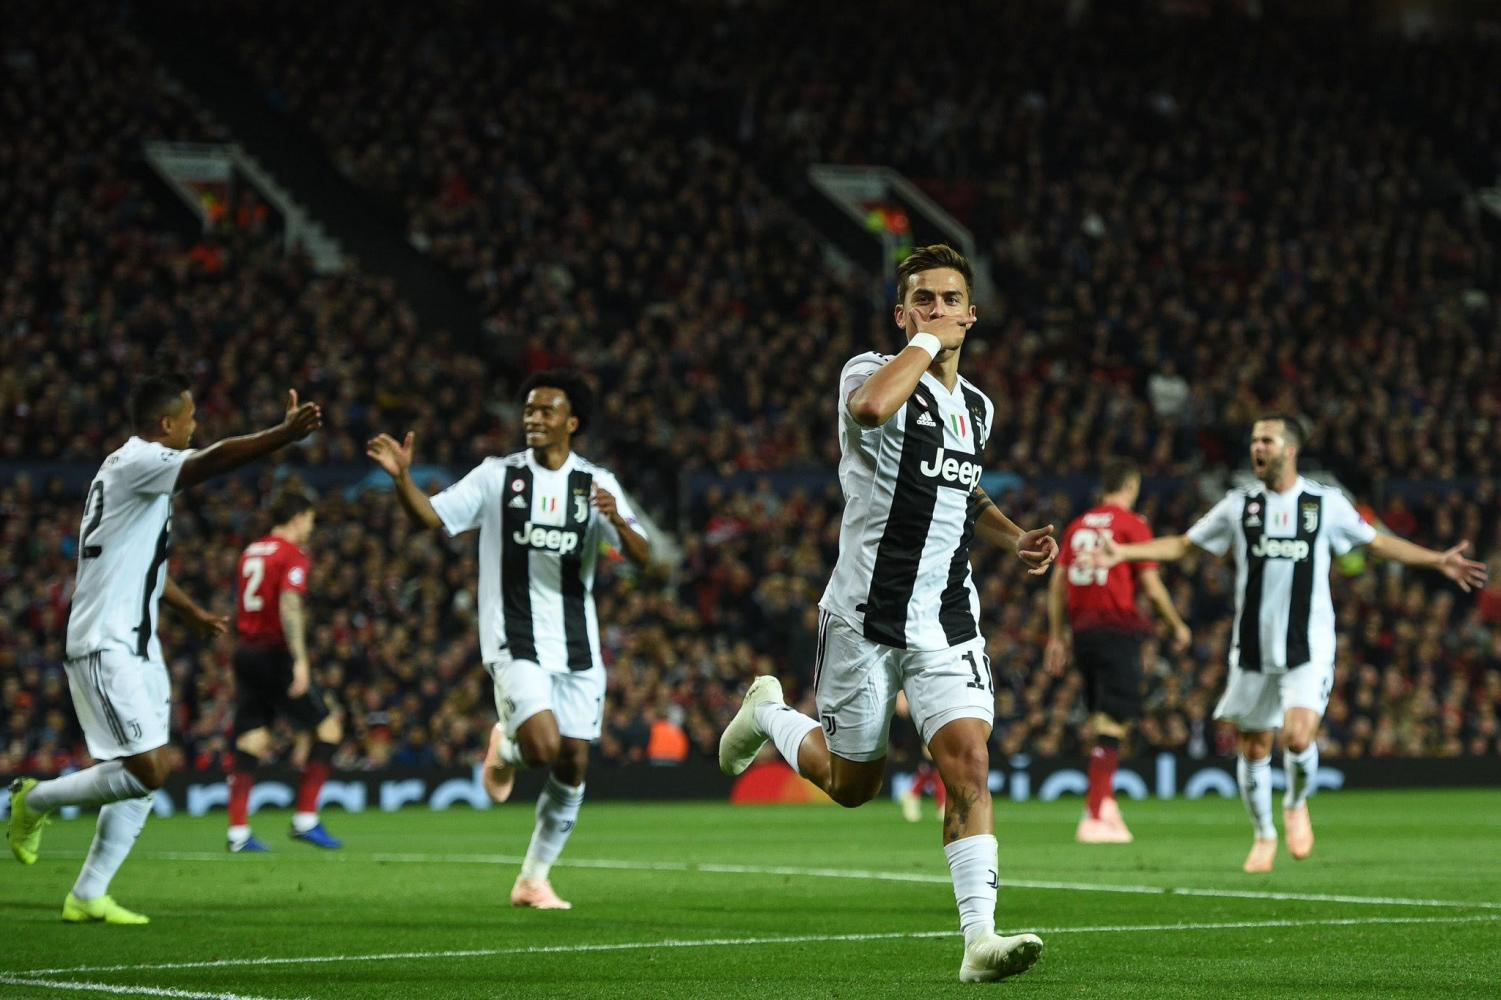 Paulo Dybala celebrates after giving Juventus a 1-0 lead against Manchester United.